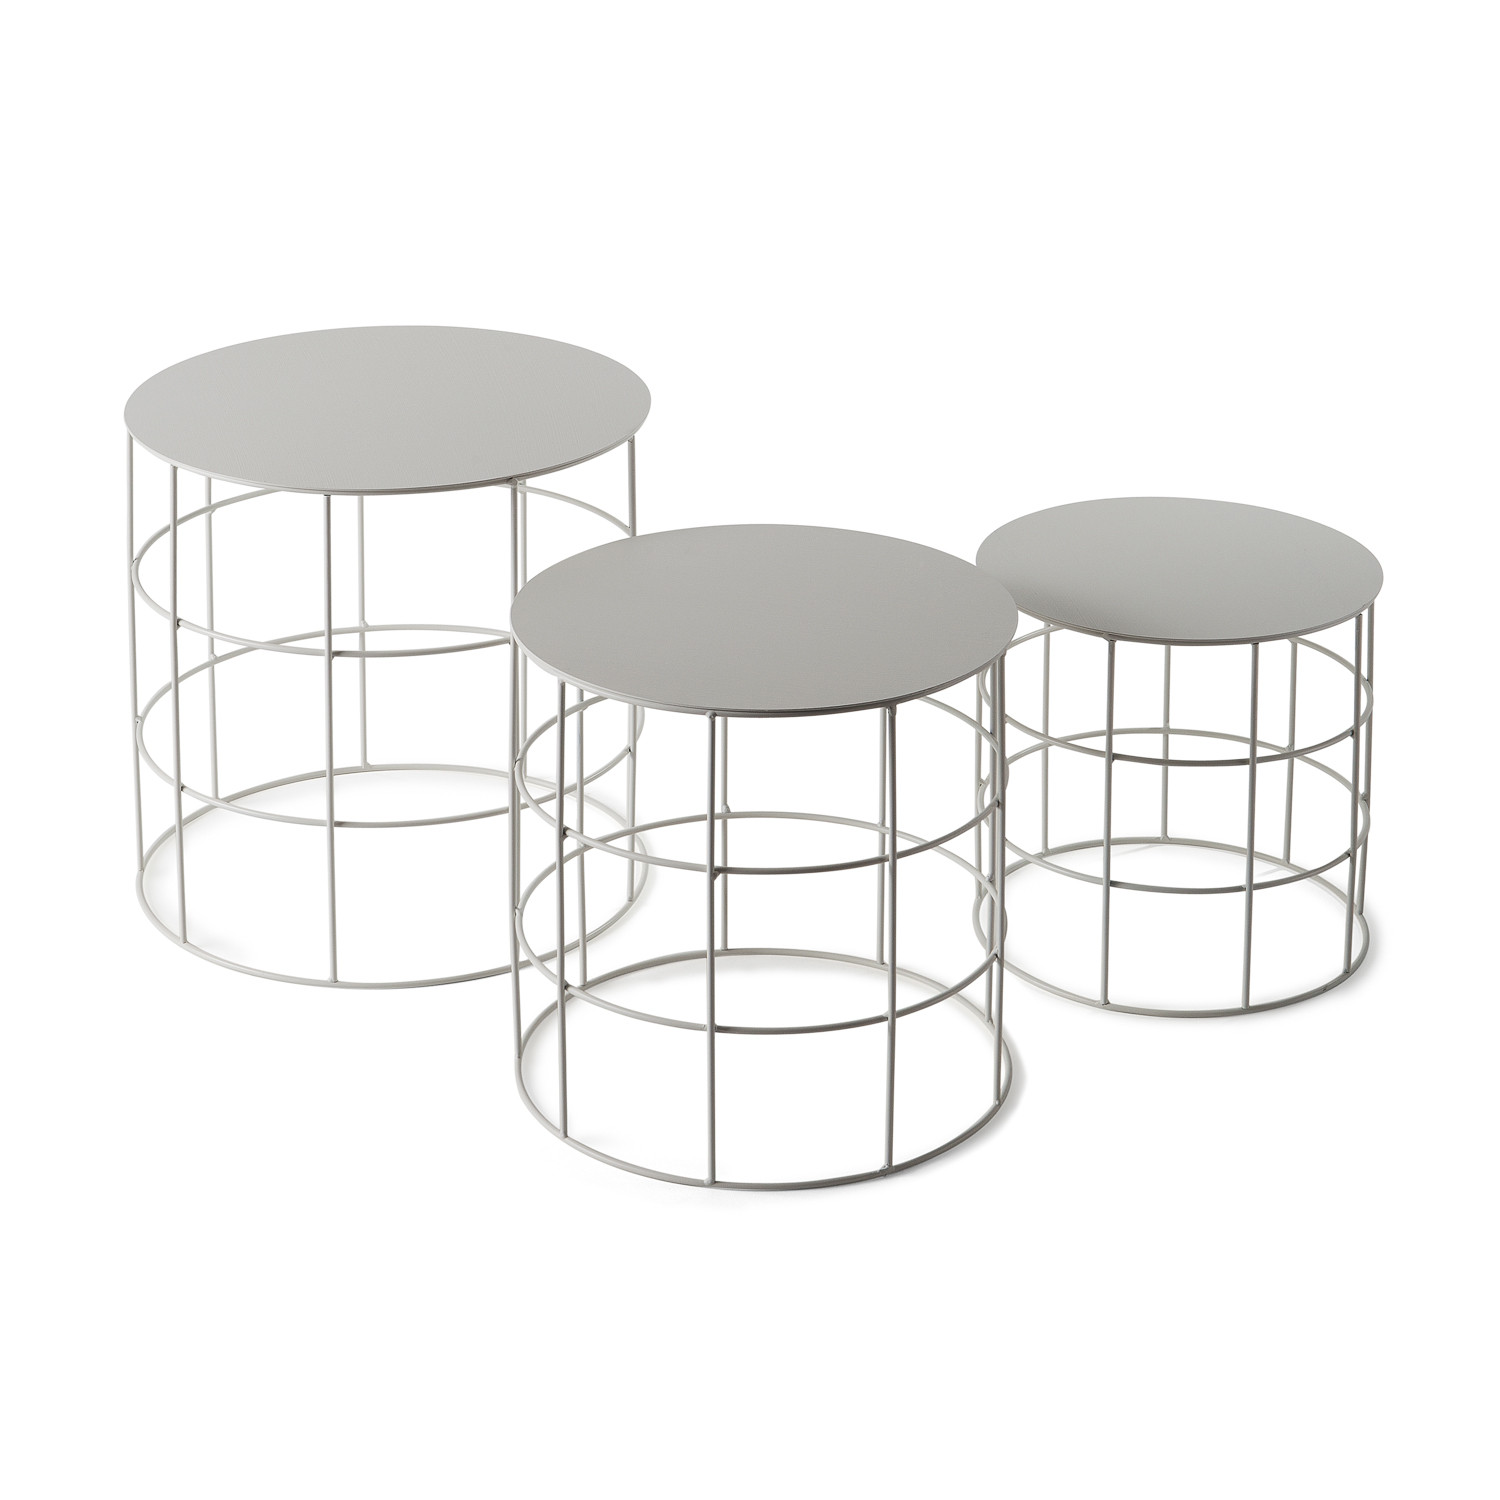 Reton Rounded Coffee Tables